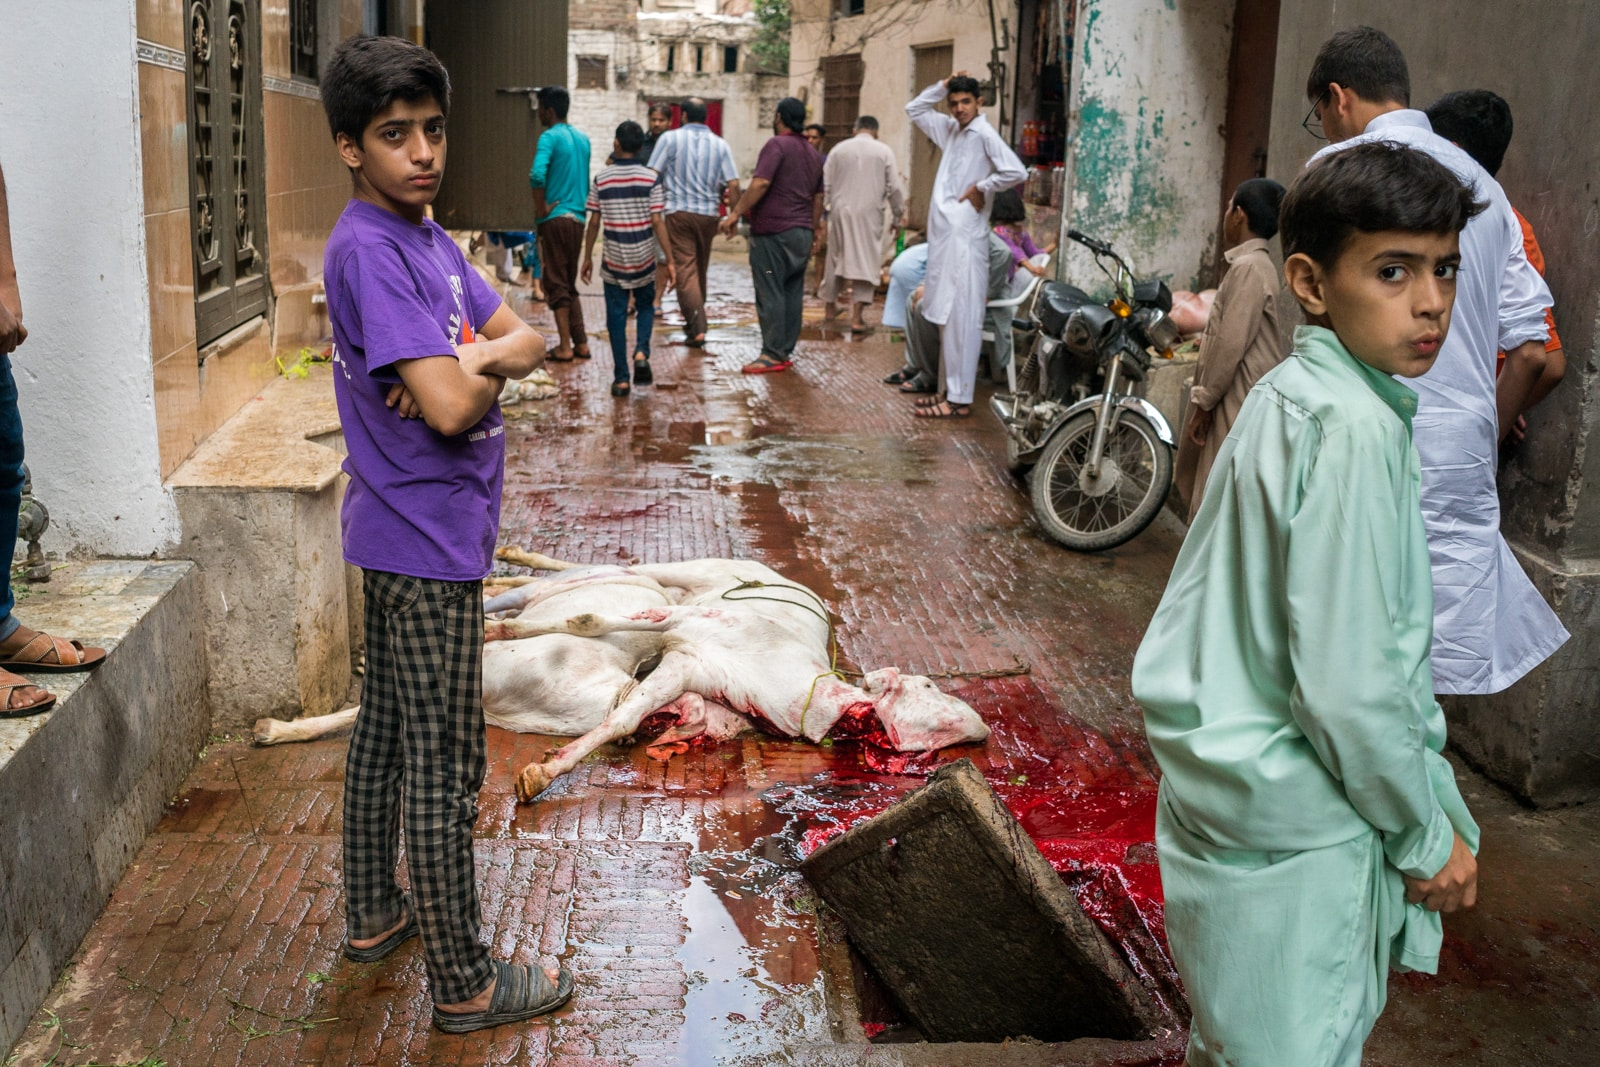 Celebrating Eid al-Adha in Lahore, Pakistan - Dead goats lying on the streets - Lost With Purpose travel blog